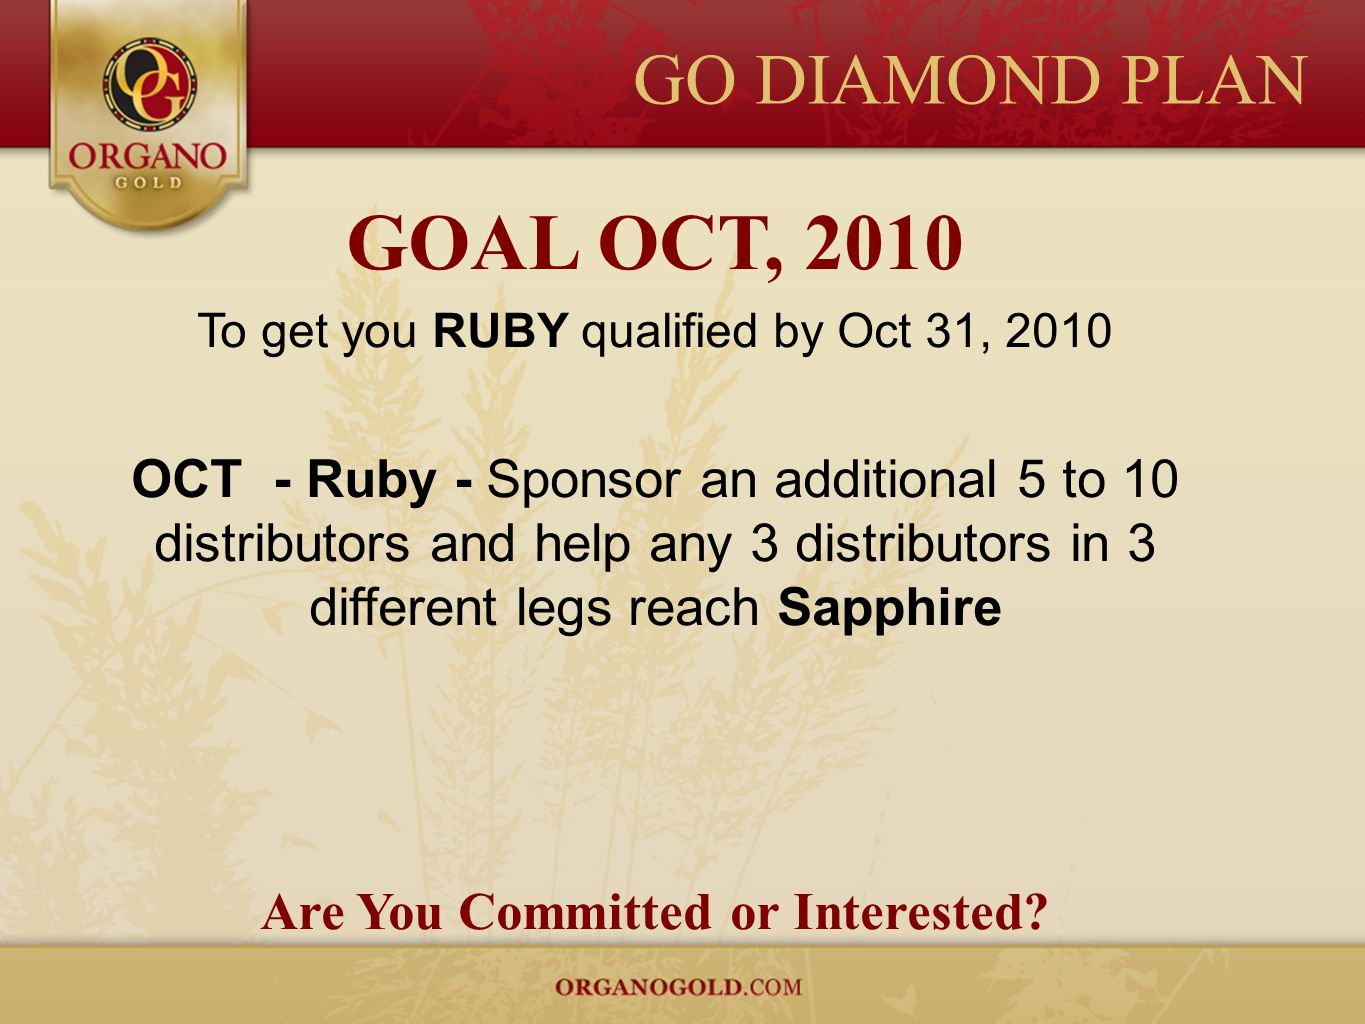 Are You Committed or Interested